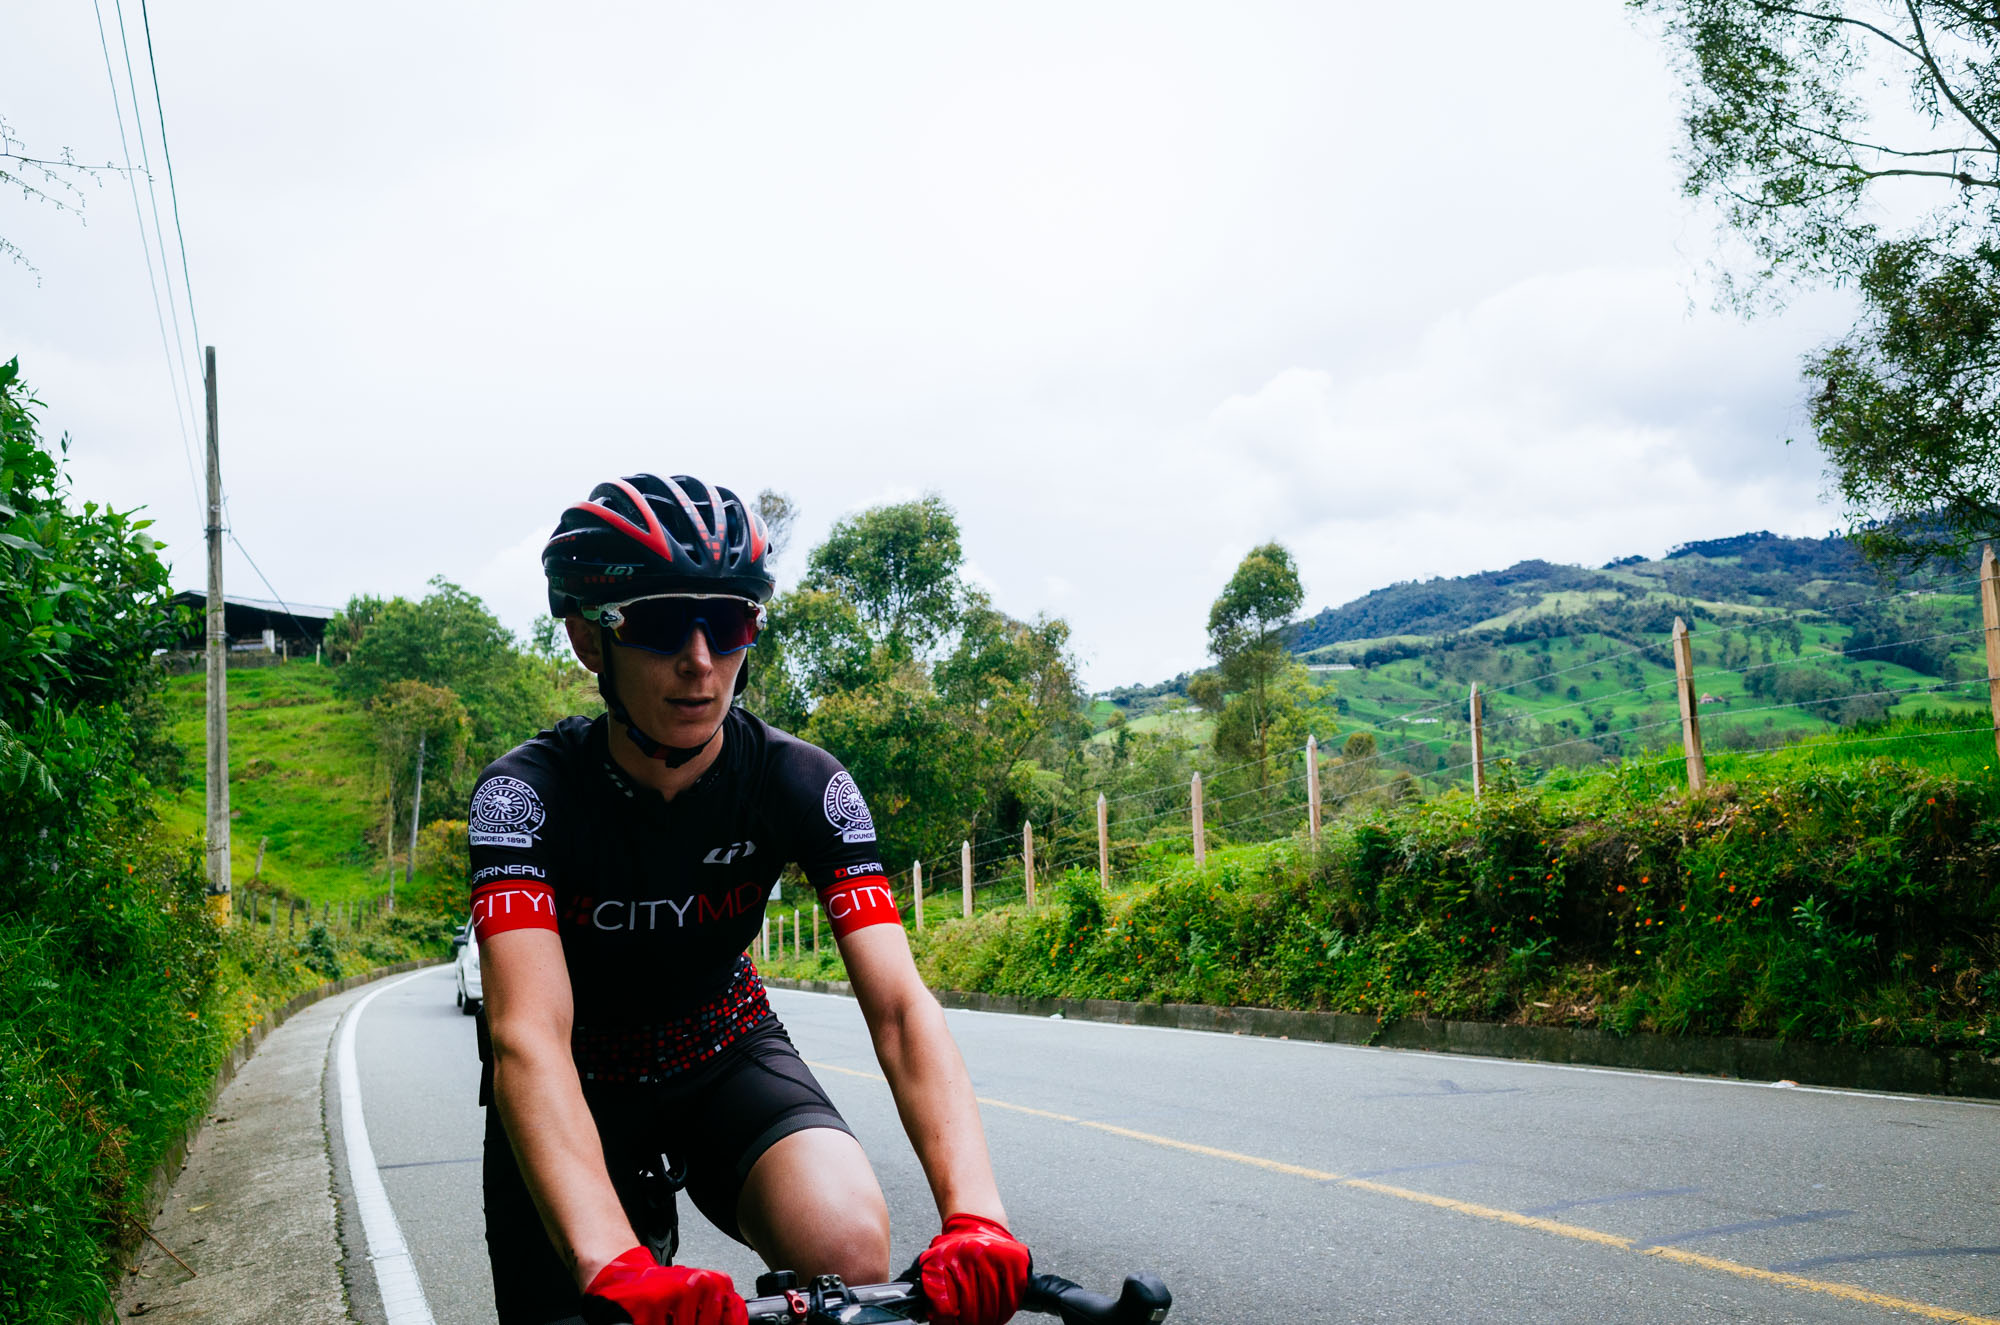 to-be-determined-photo-rhetoric-cycling-in-colombia-1116.jpg